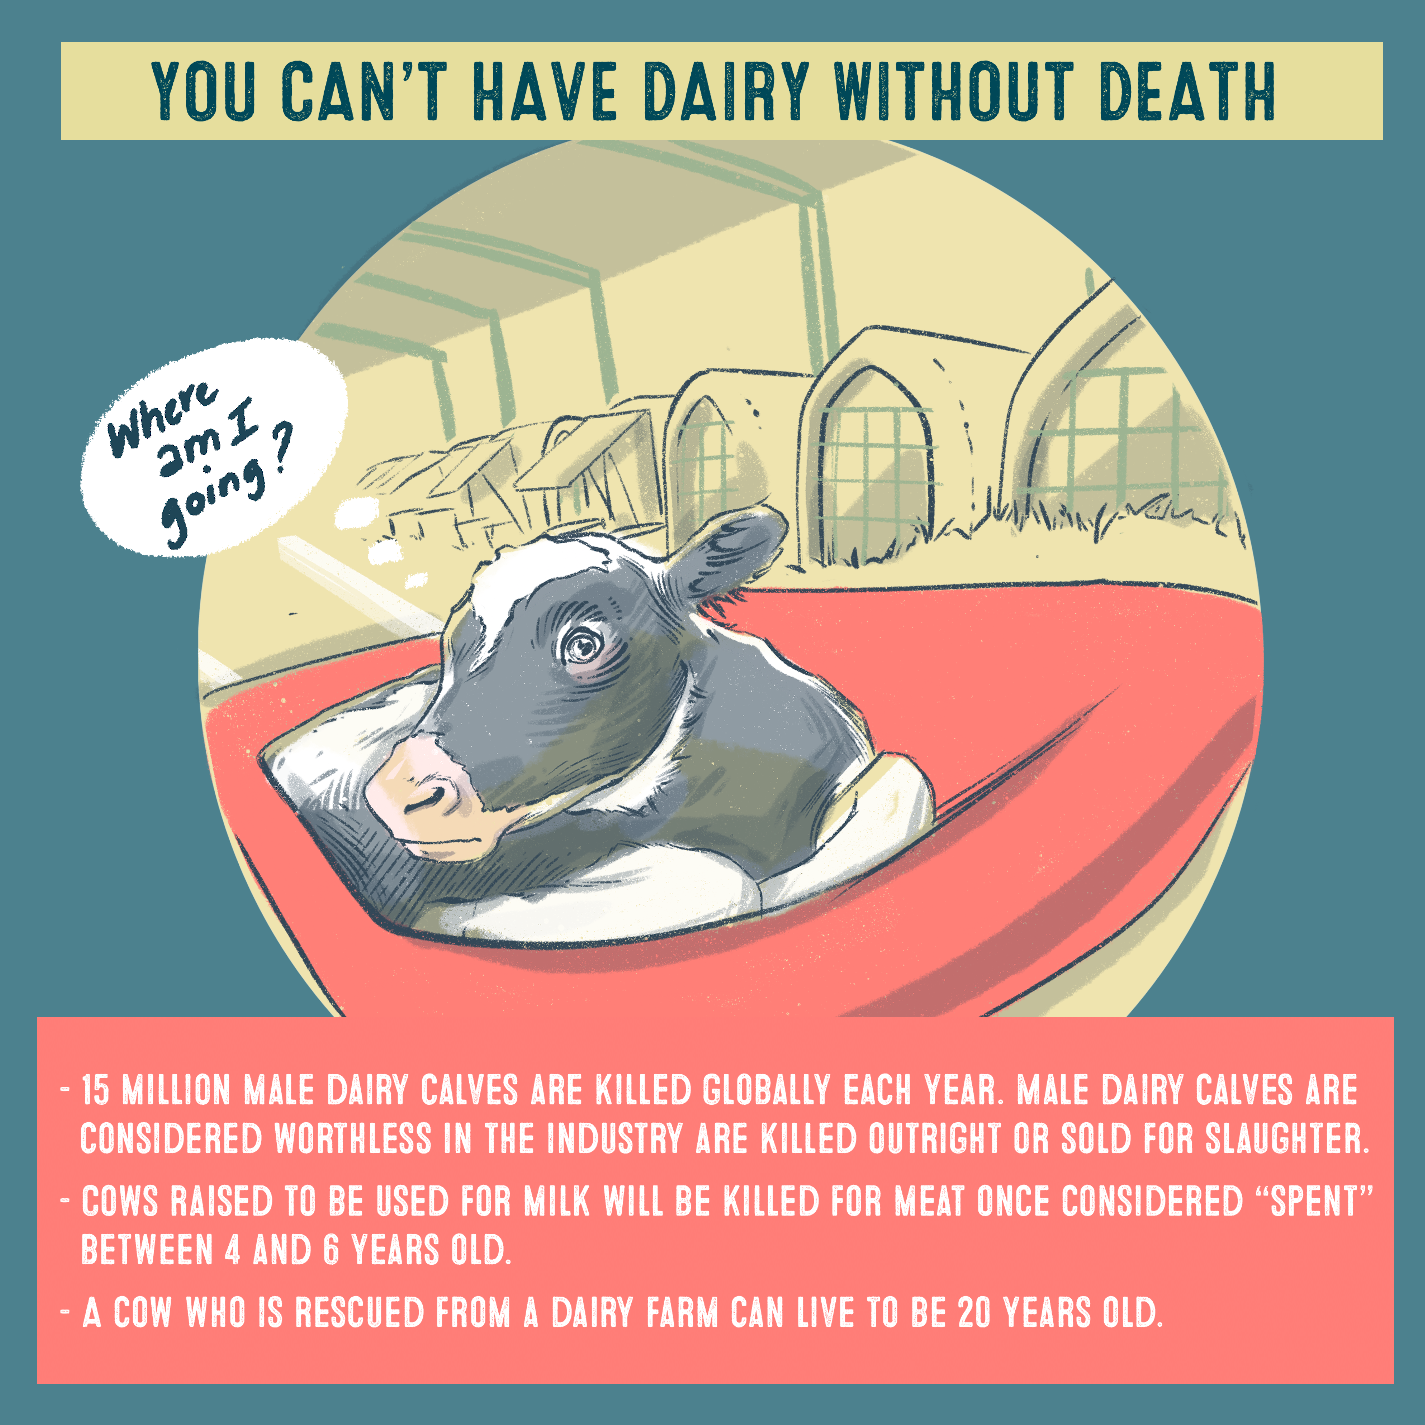 You can't have dairy without death Where am I going? 15 million make dairy calves are killed globally each year. Male dairy calves are considered worthless in the industry are killed outright or sold for slaughter. Cows raised to be used for milk will be killed for meat once considered spent between 4 and 6 years old.  A cow can live up to 20 years old. They don't get to reture, or live out their full lives as they deserve.